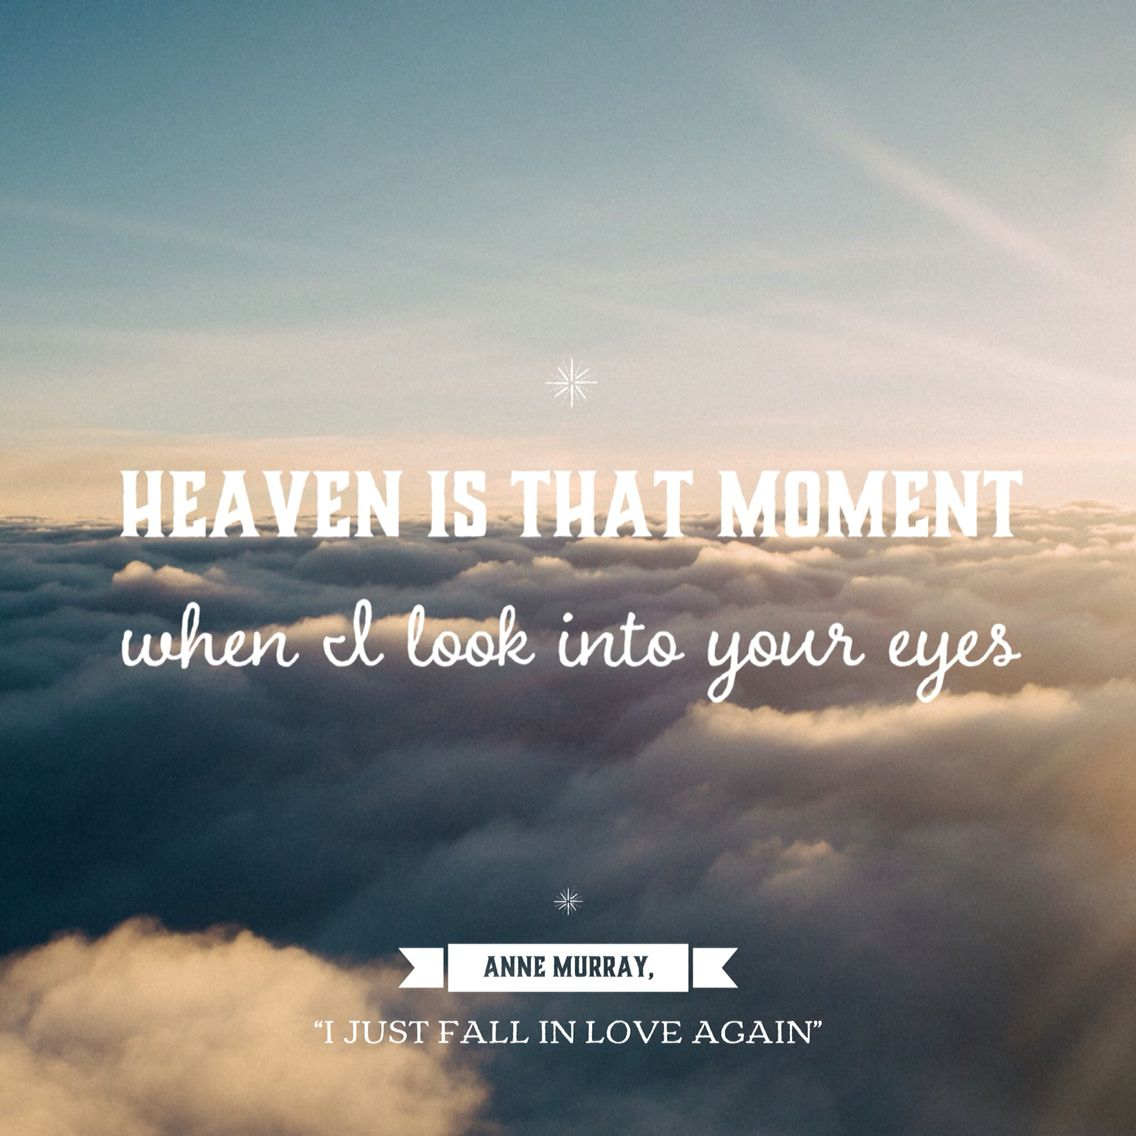 This Moment in Heaven Lyrics by The Phantom Family Halo